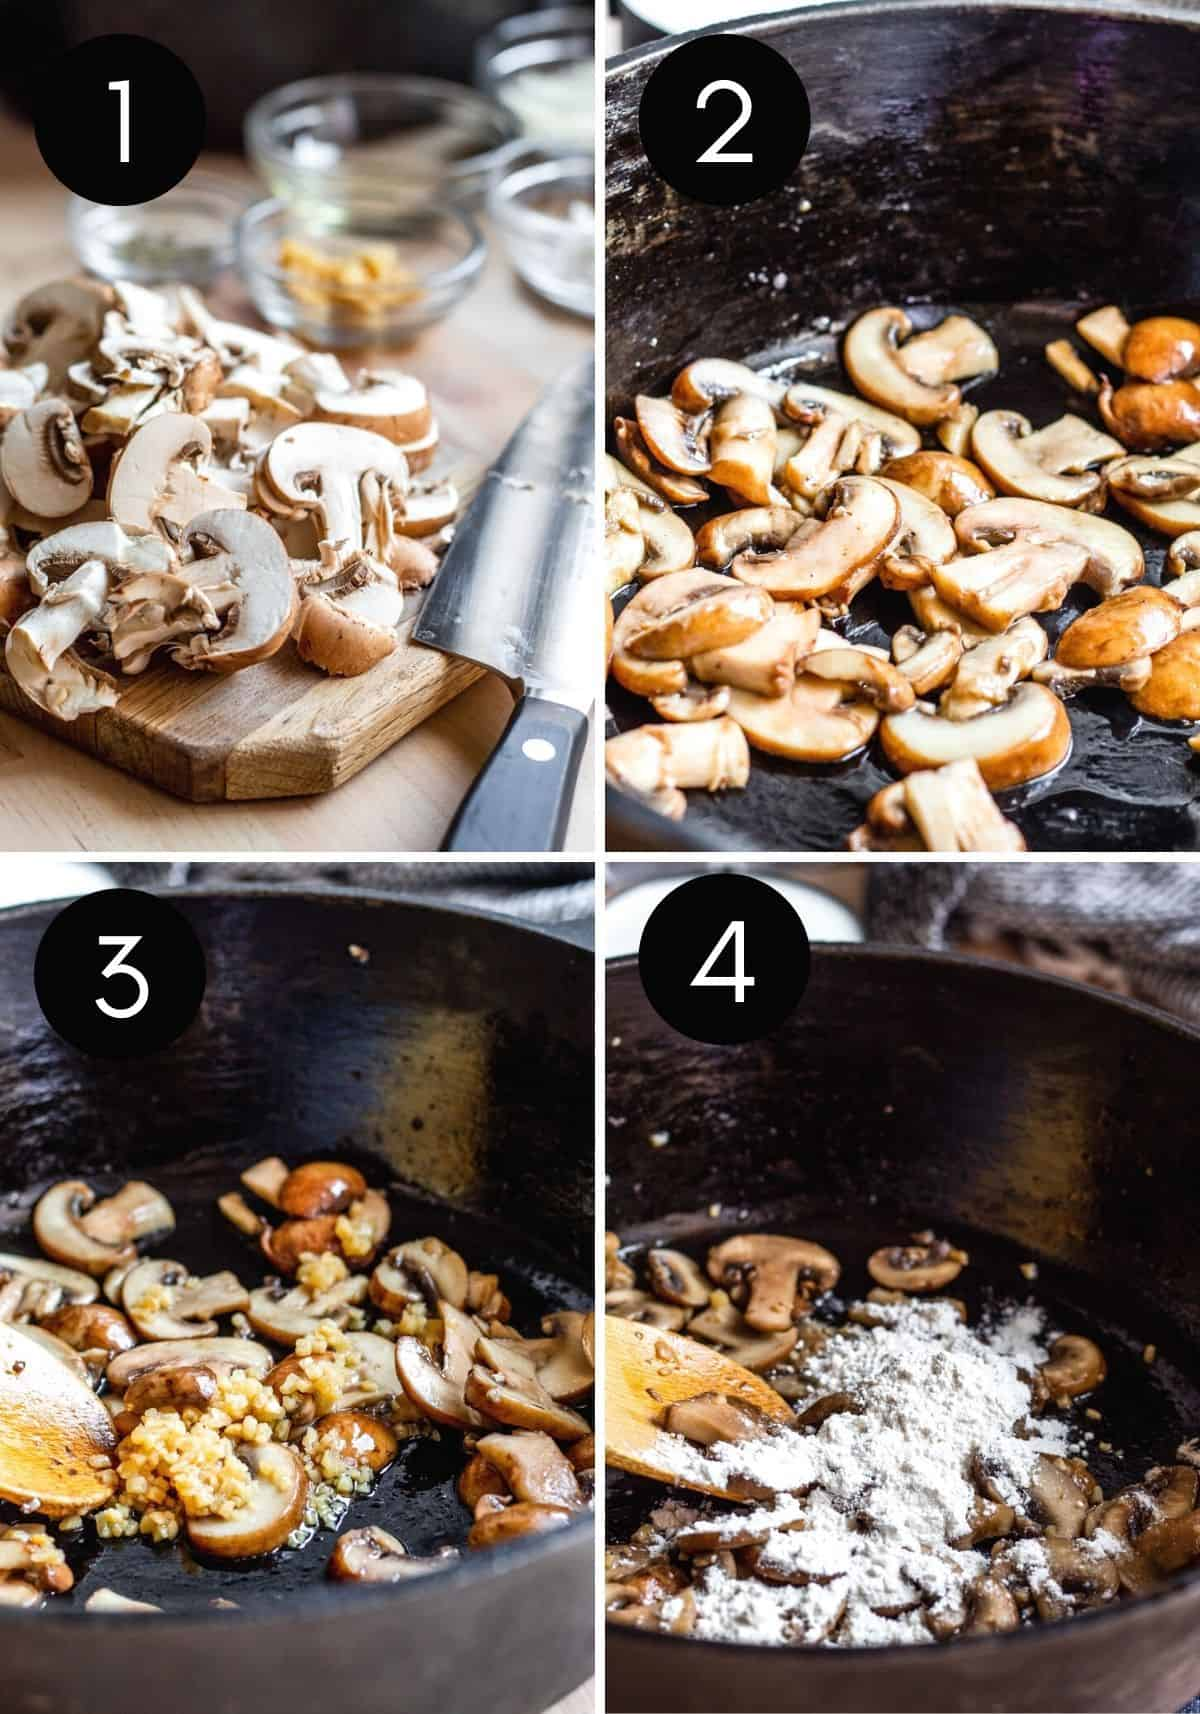 Prep image showing mushrooms being sliced and cooked in skillet.